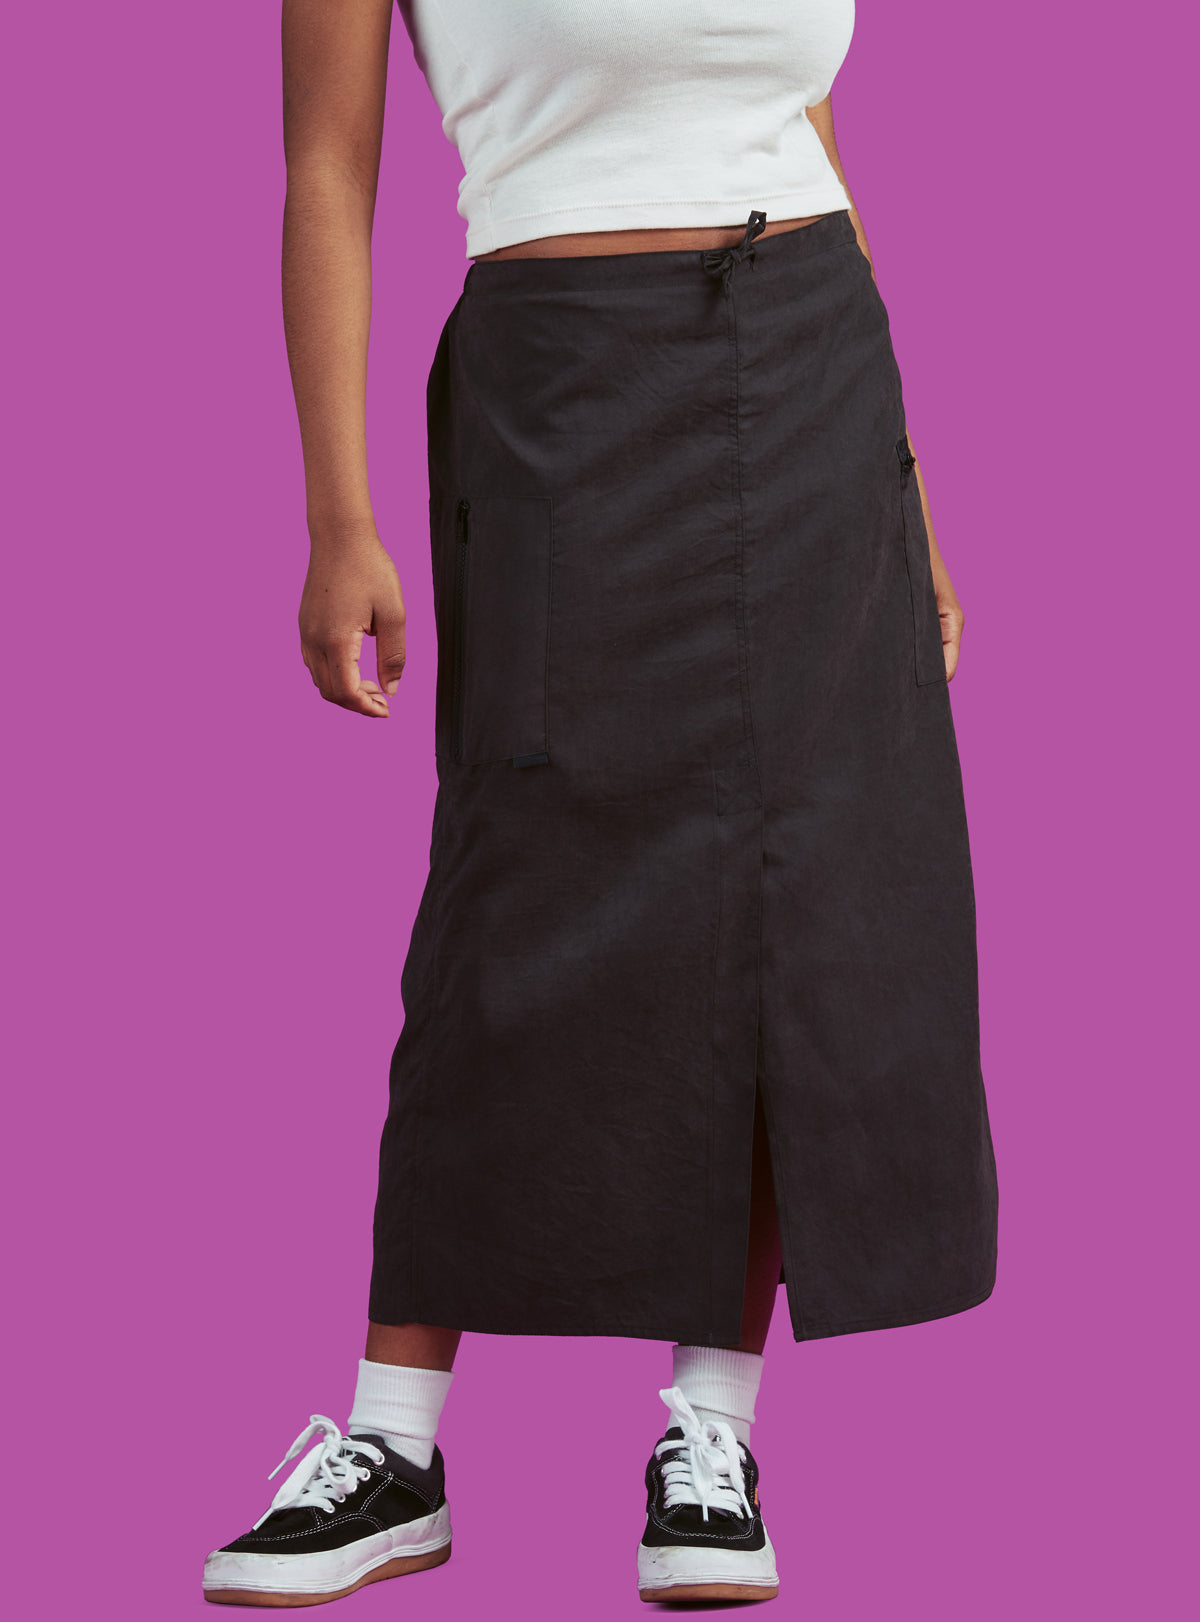 Notion Skirt